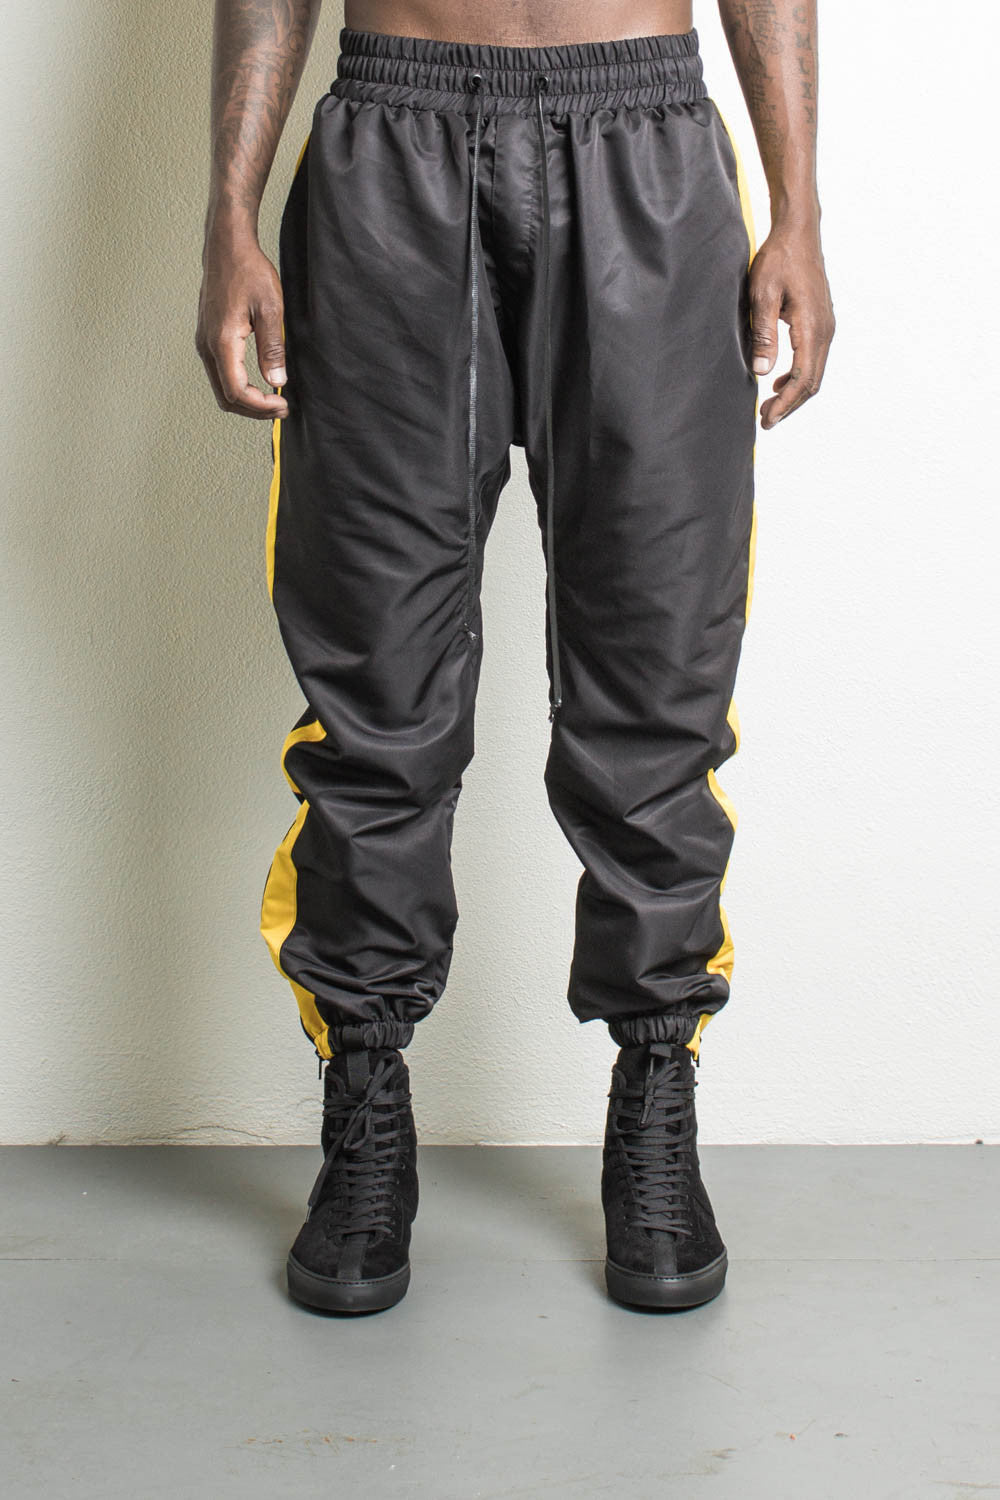 Shop for and buy mens parachute pants online at Macy's. Find mens parachute pants at Macy's.